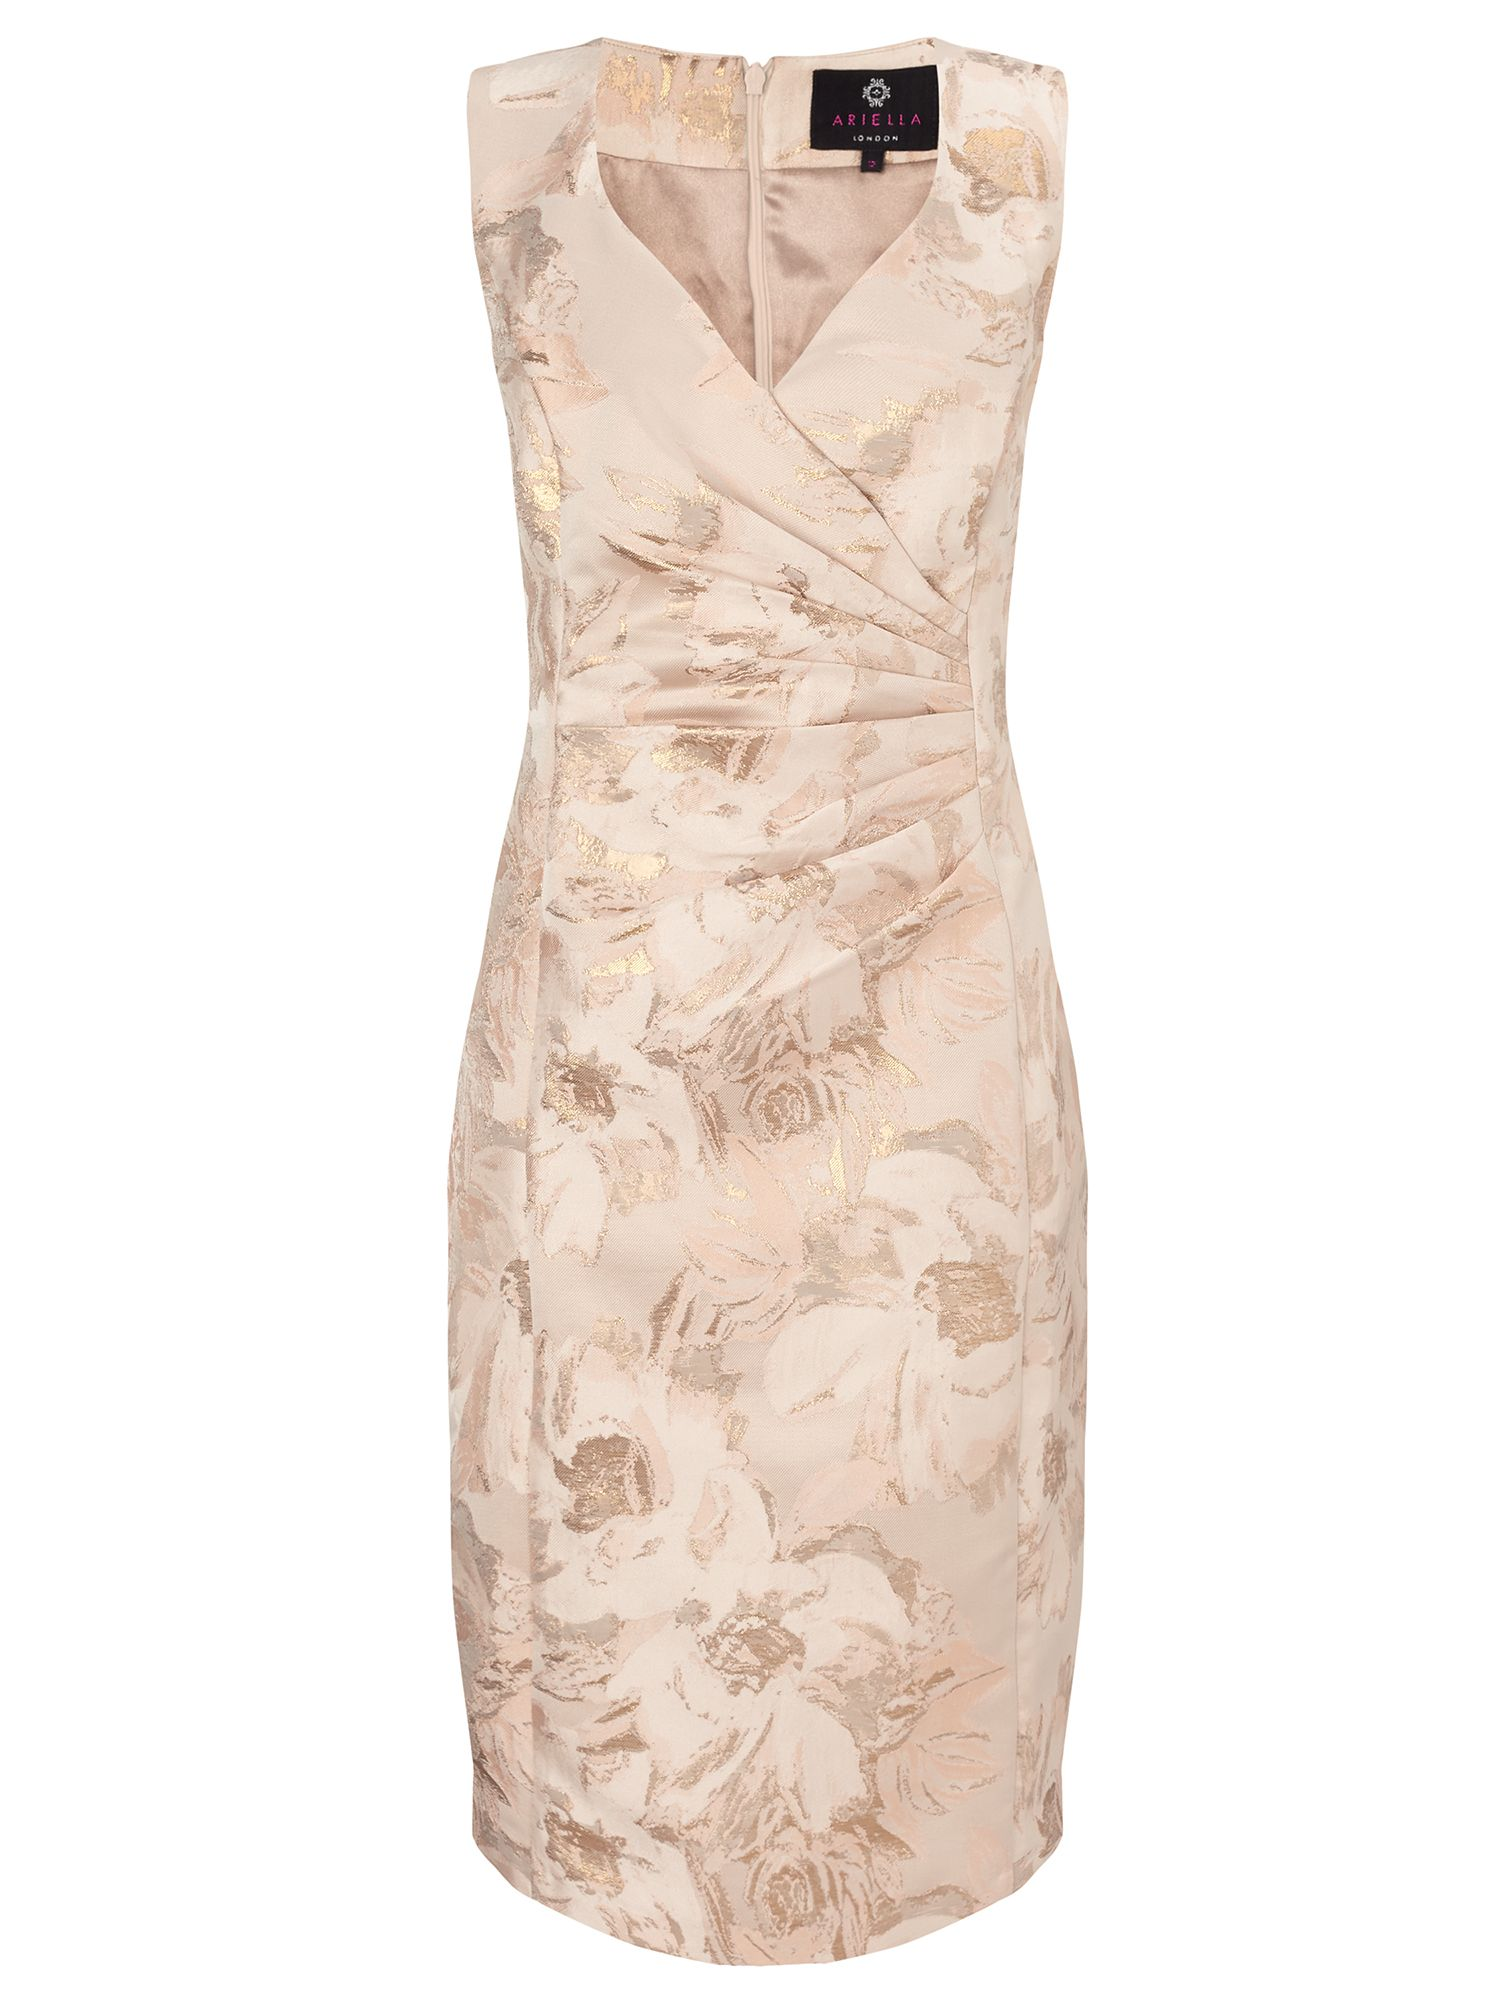 Ariella Dara midi jacquard dress, Gold